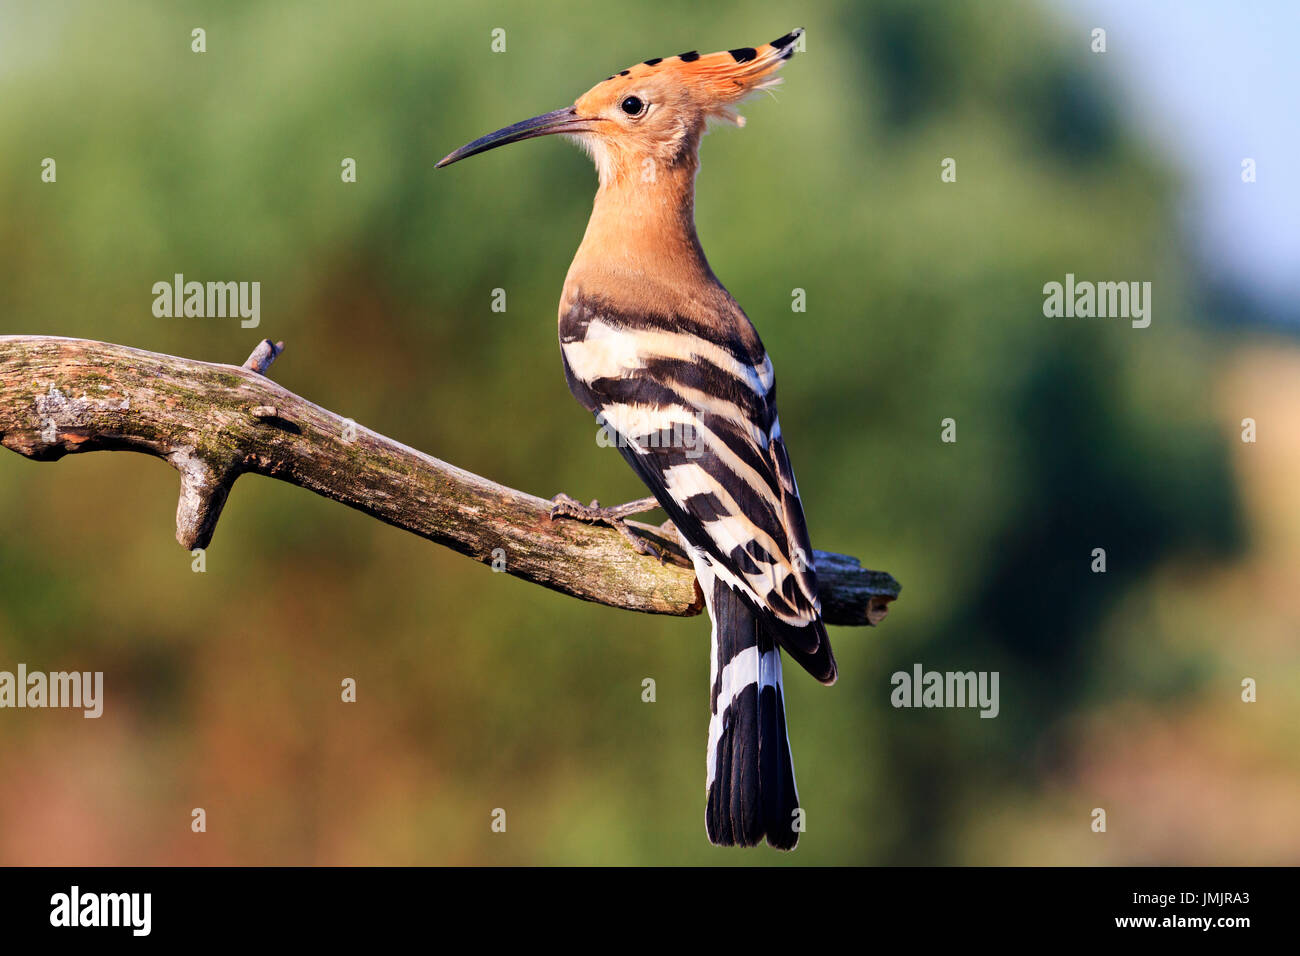 rare bird with a bang on the head,wildlife - Stock Image